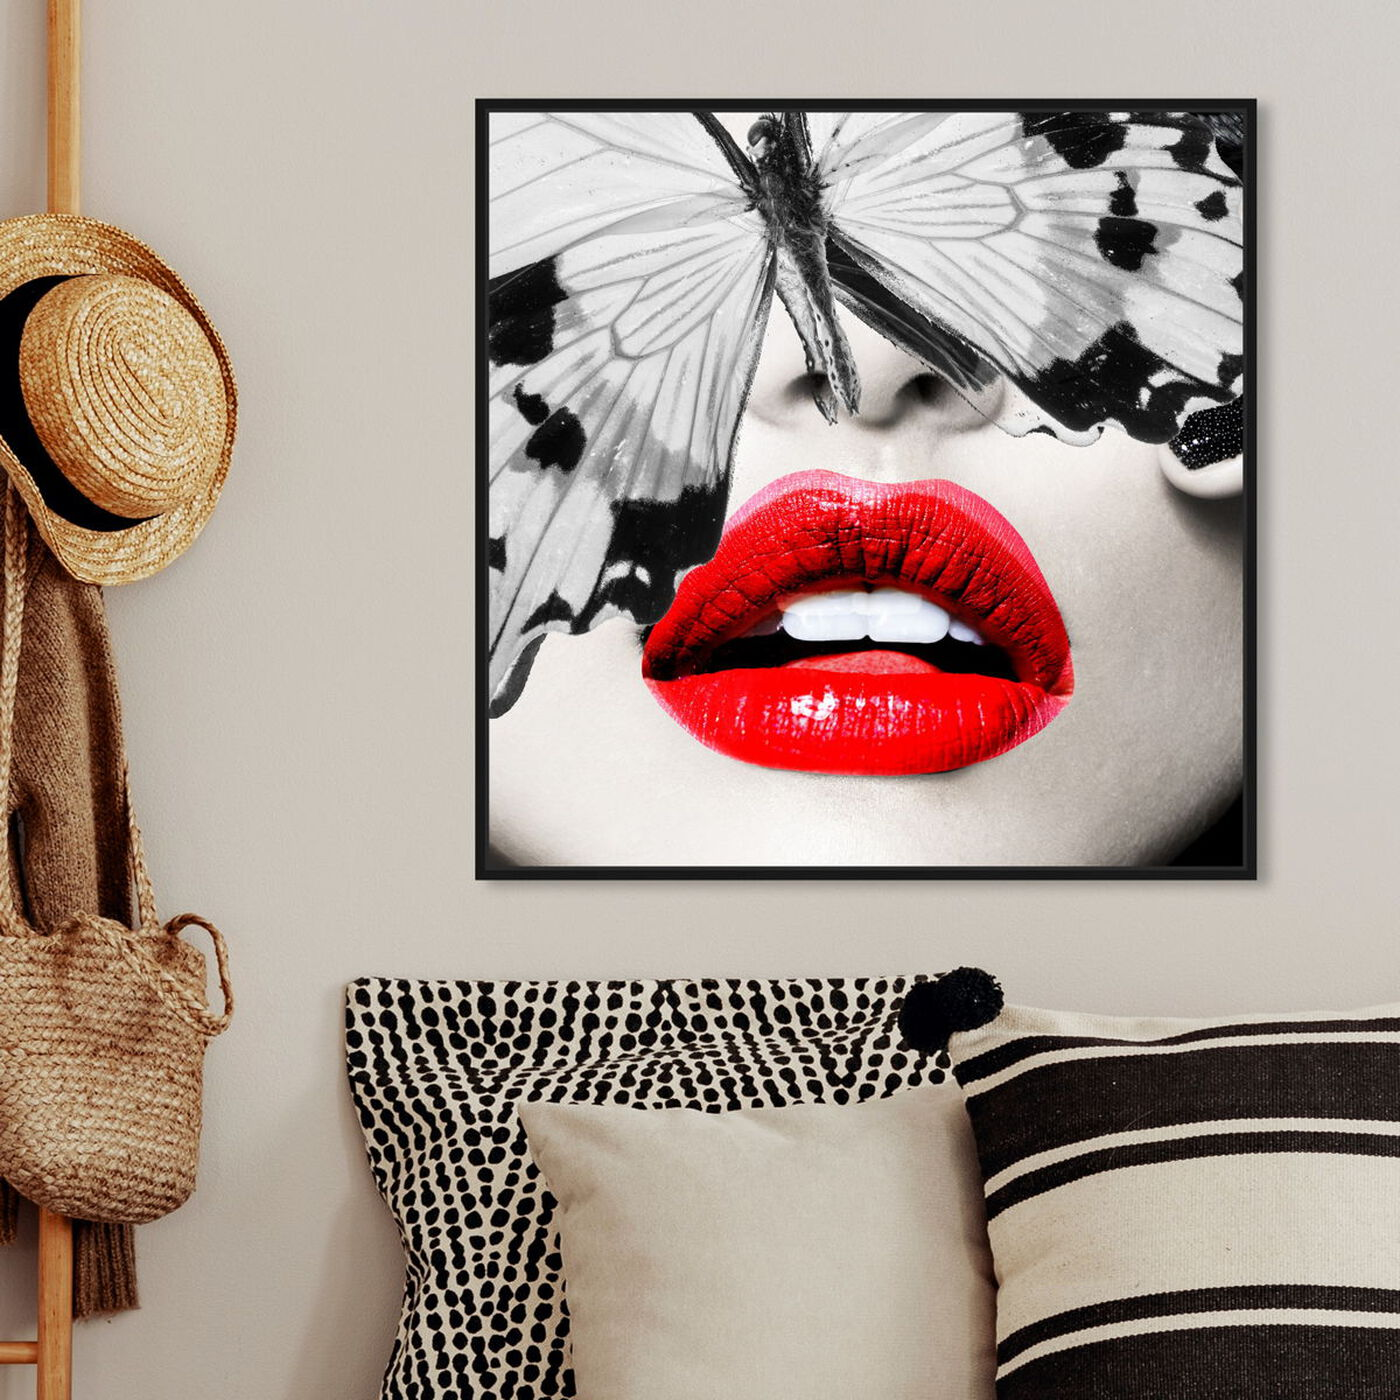 Hanging view of Butterfly Lips featuring fashion and glam and lips art.